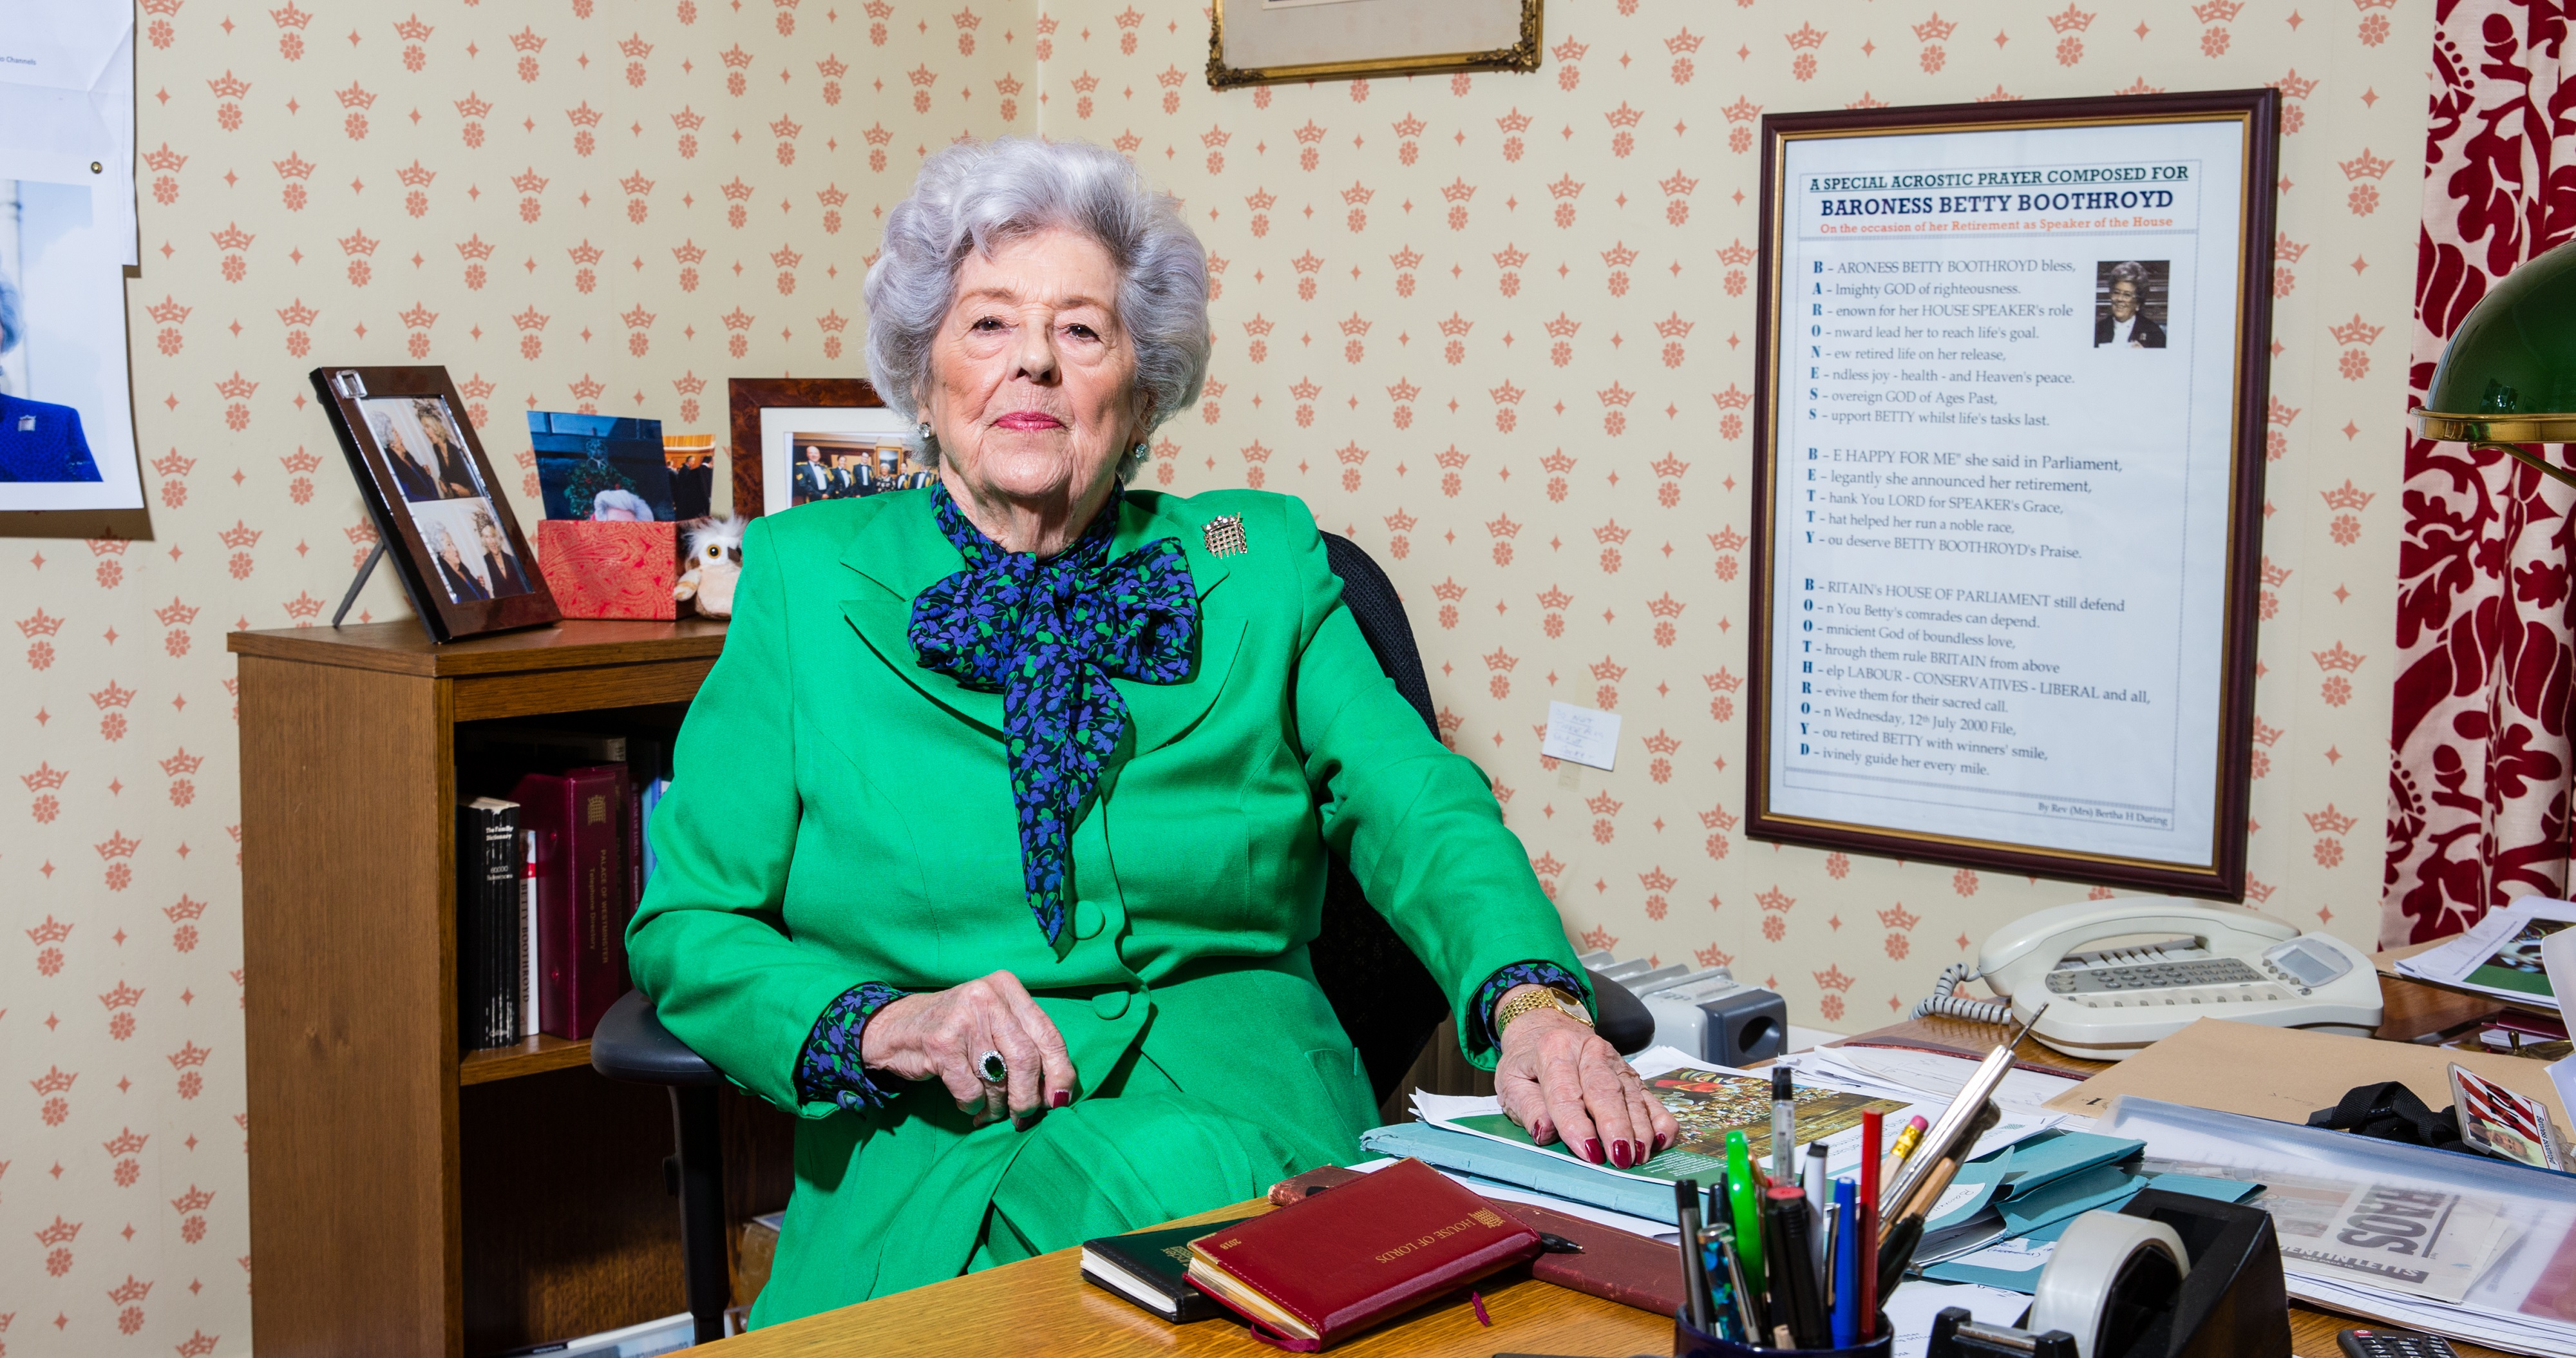 Betty Boothroyd served as Speaker of the House of Commons from 1992-2000